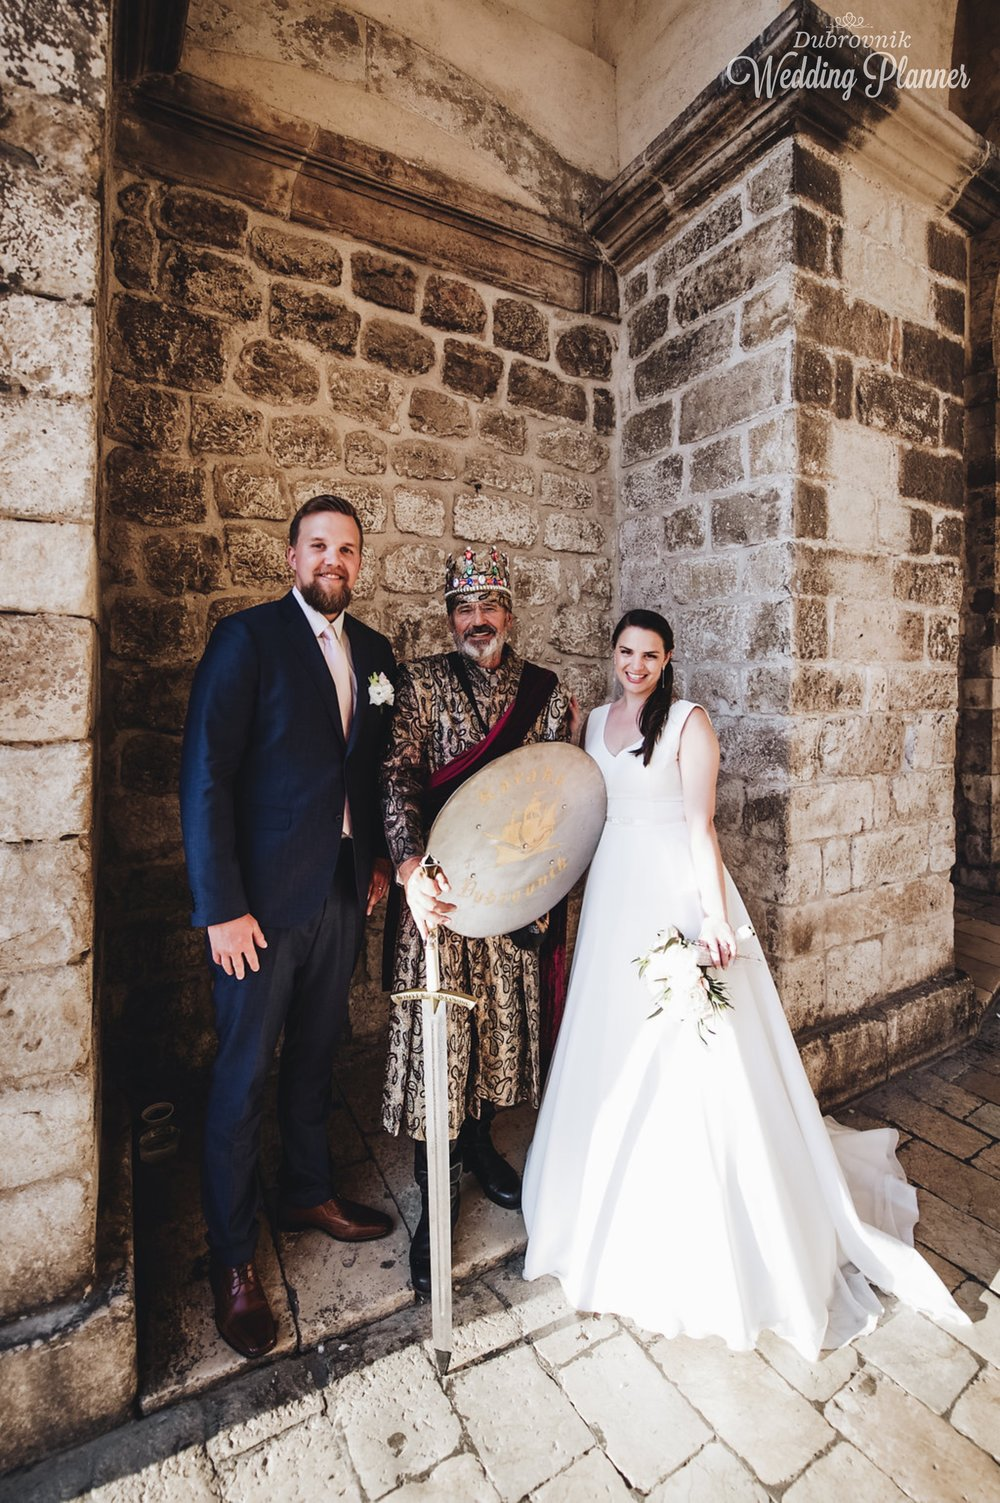 Dubrovnik Wedding Planner.jpg